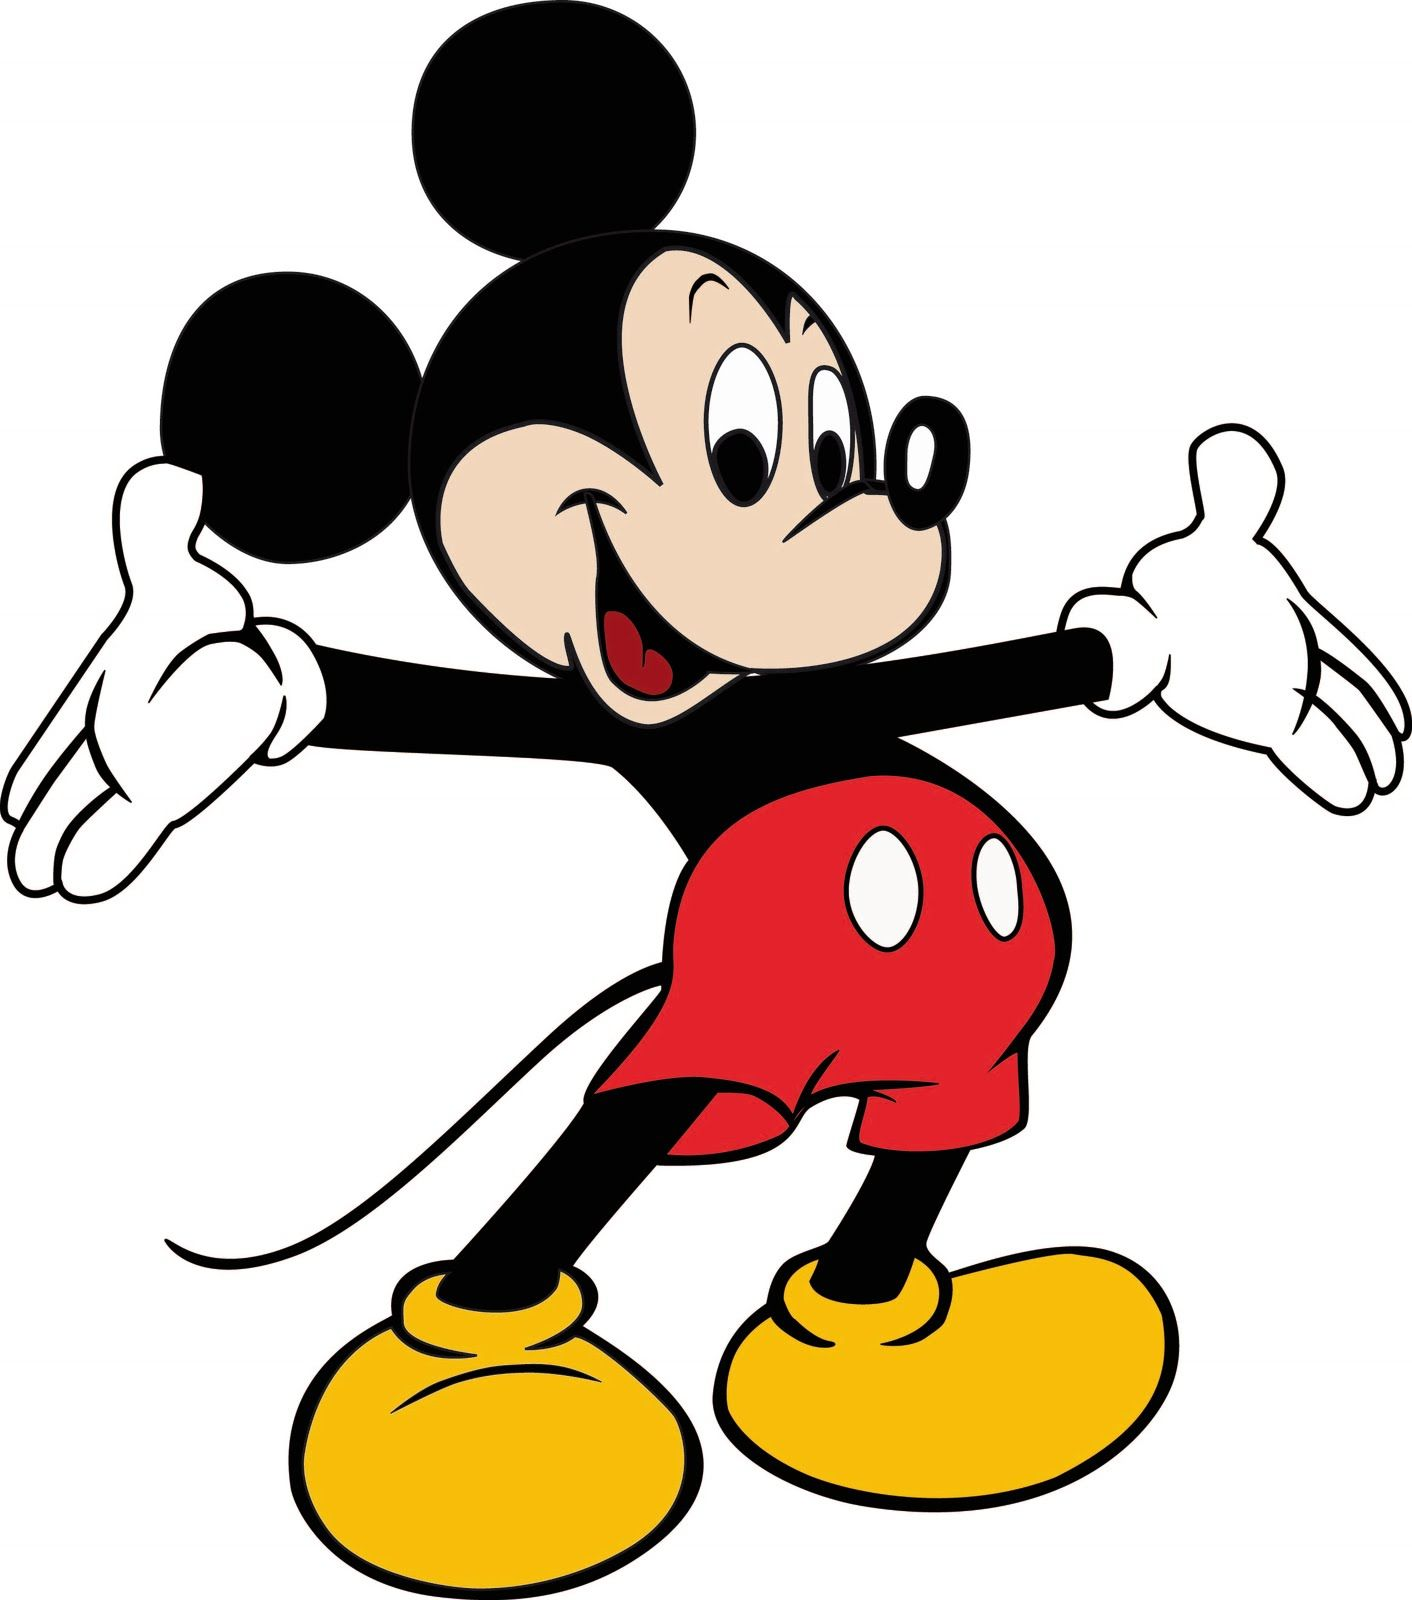 Mickey mouse images hd clipart jpg transparent stock mickey mouse clipart - Free Large Images | Kids | Mickey mouse ... jpg transparent stock